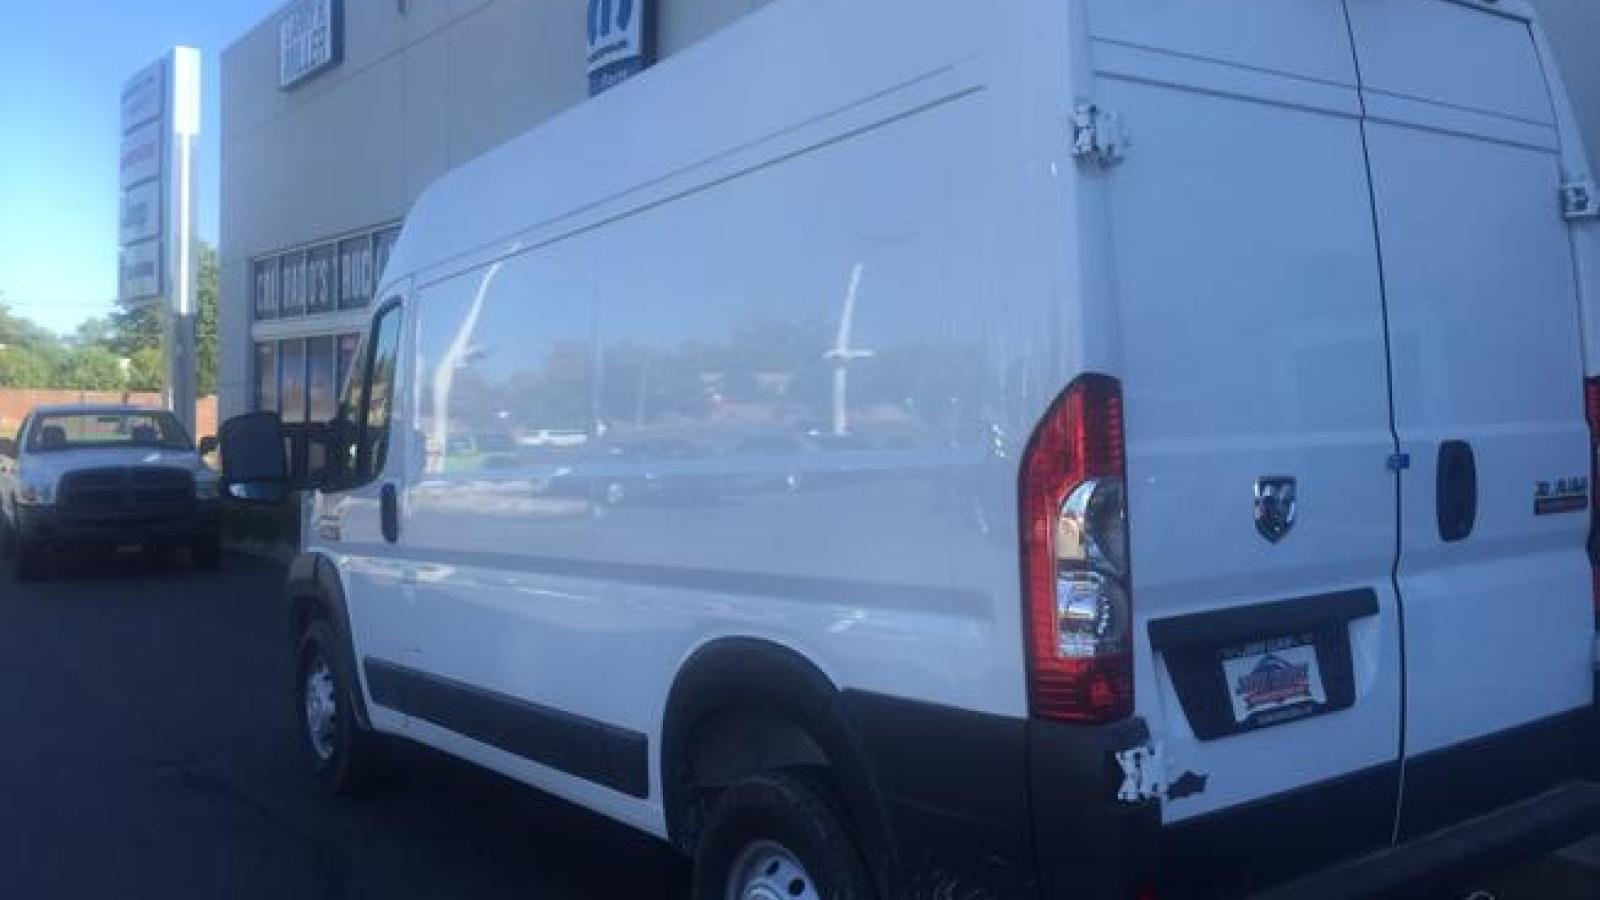 This van is being used as a mobile laboratory for cannabis research at the University of Colorado. Because marijuana remains illegal under federal law, CU researchers have had to show some creativity in how they collect data. (Cinnamon Bidwell / Courtesy Photo)